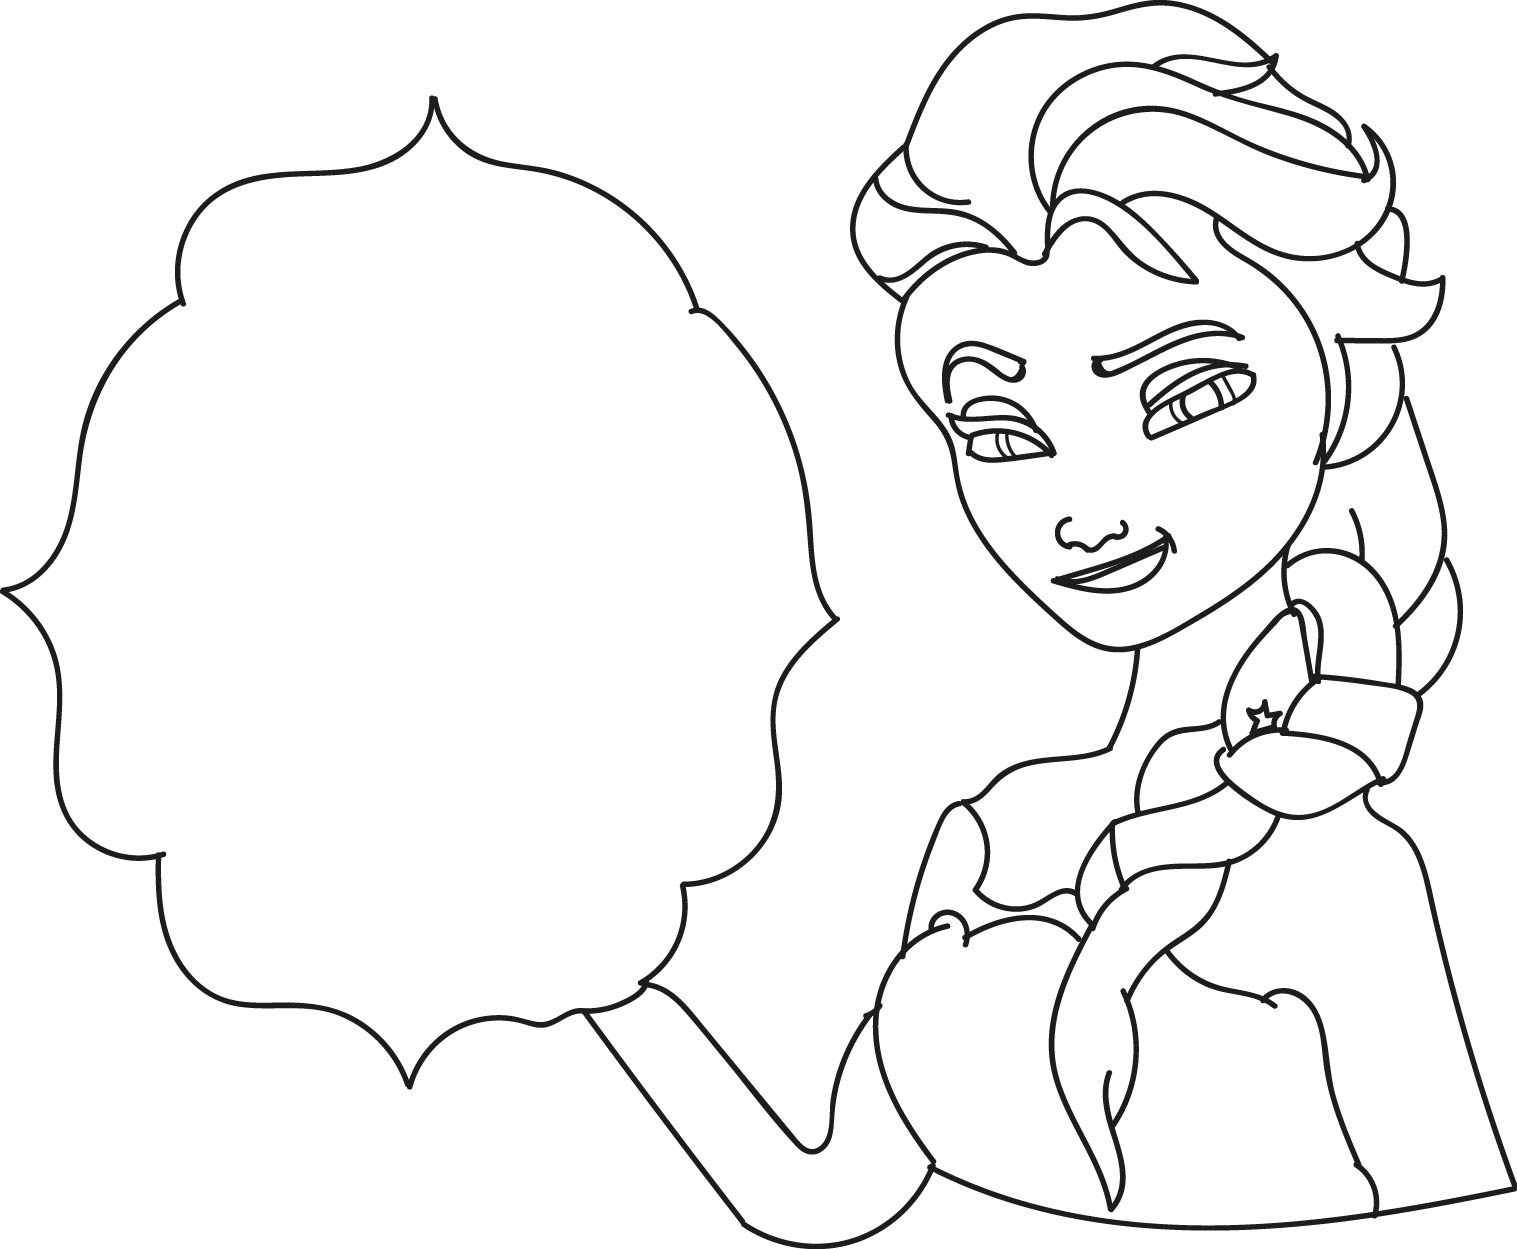 Frozen Neck Coloring Pages Frozen Best Free Coloring Pages